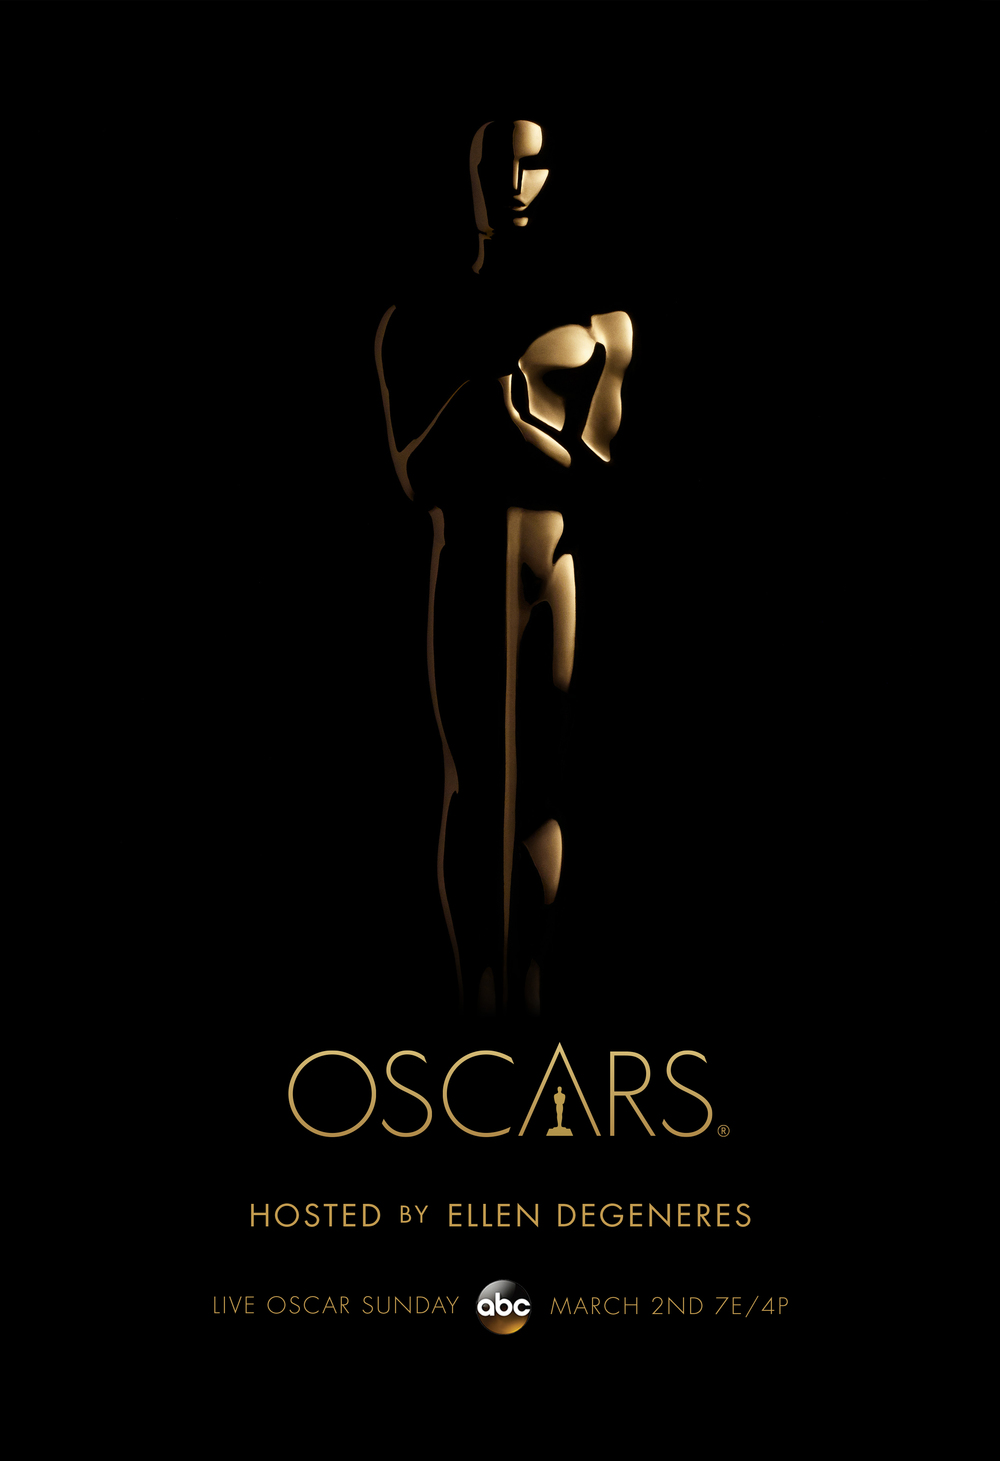 86th Academy Awards - Official Poster 2